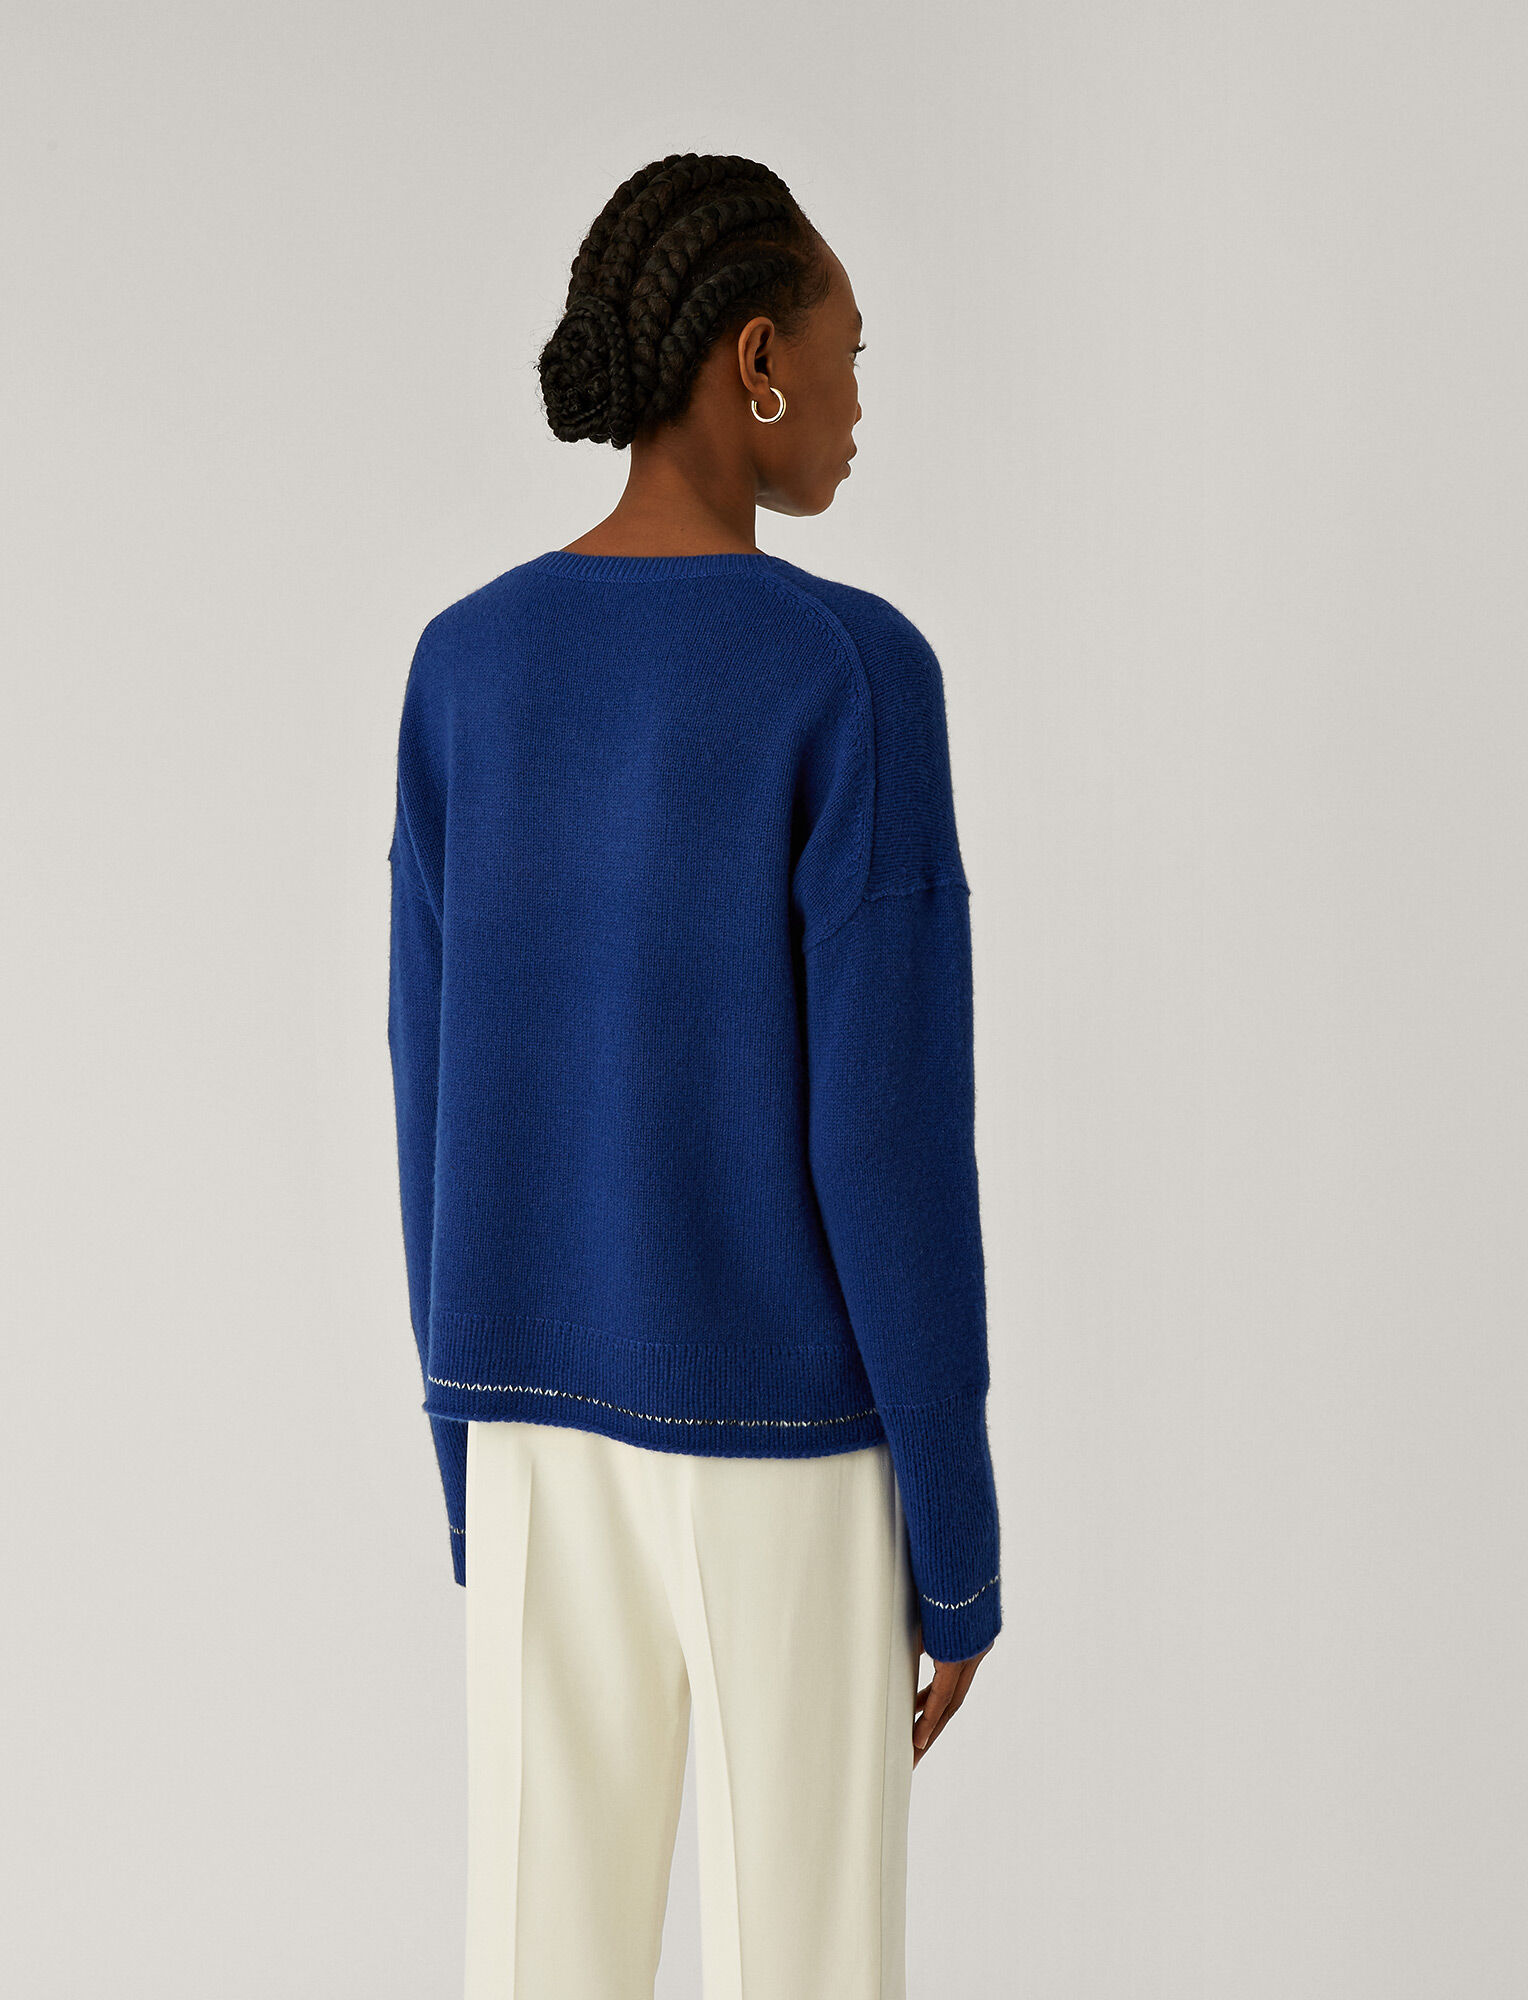 Joseph, V Neck Open Cashmere Knit, in KLEIN